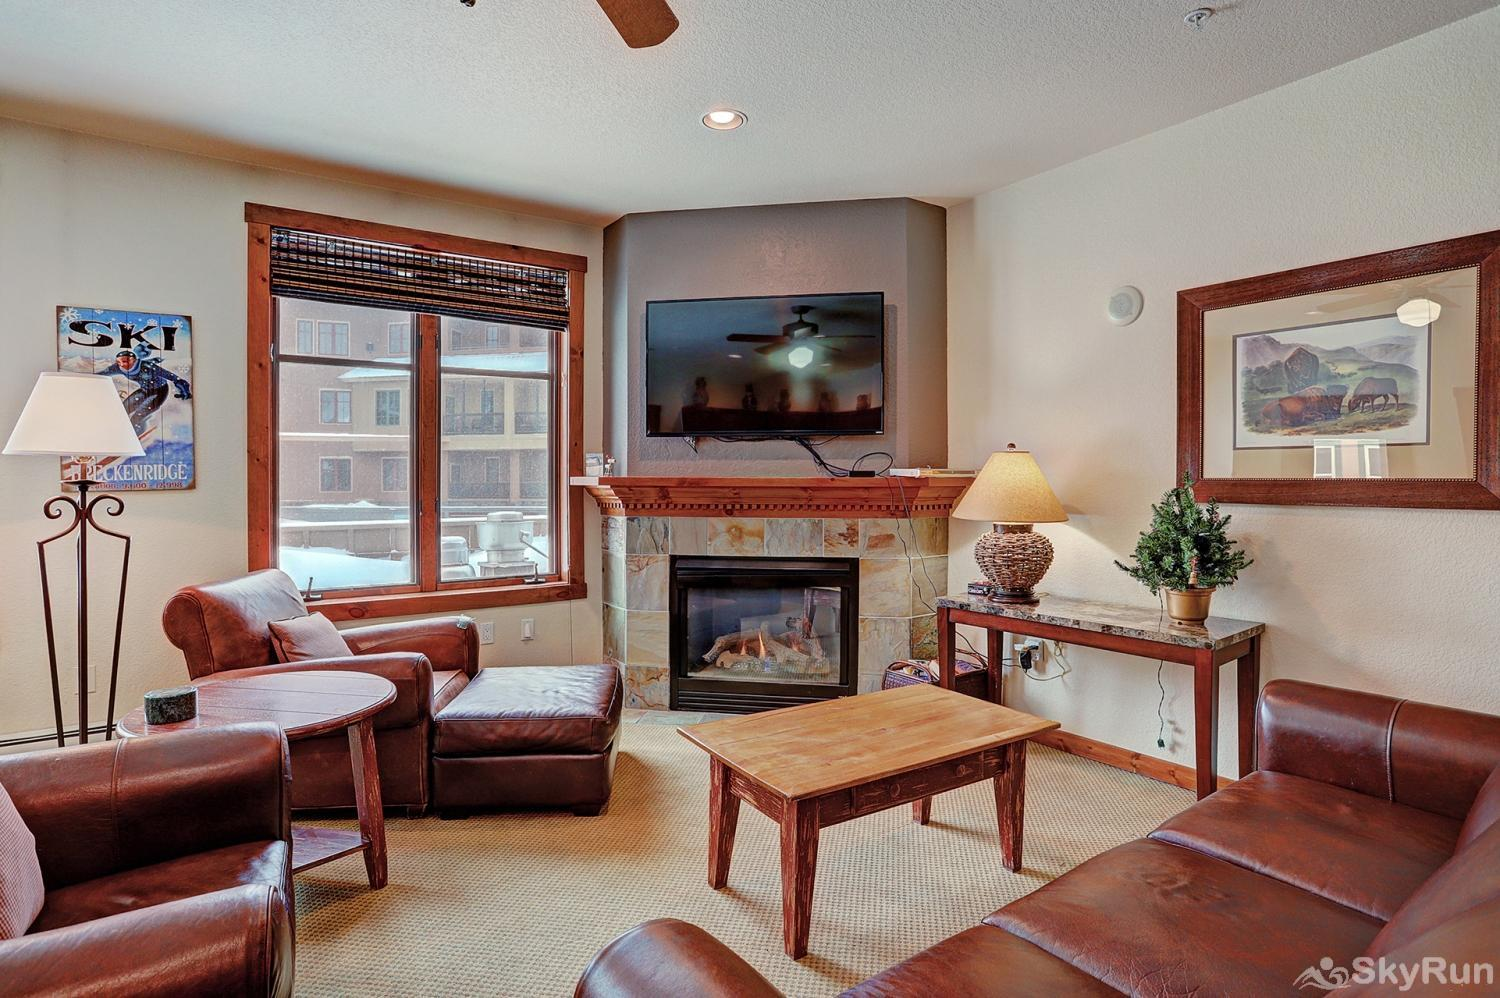 Main Street Station 2203 Additional view of living room